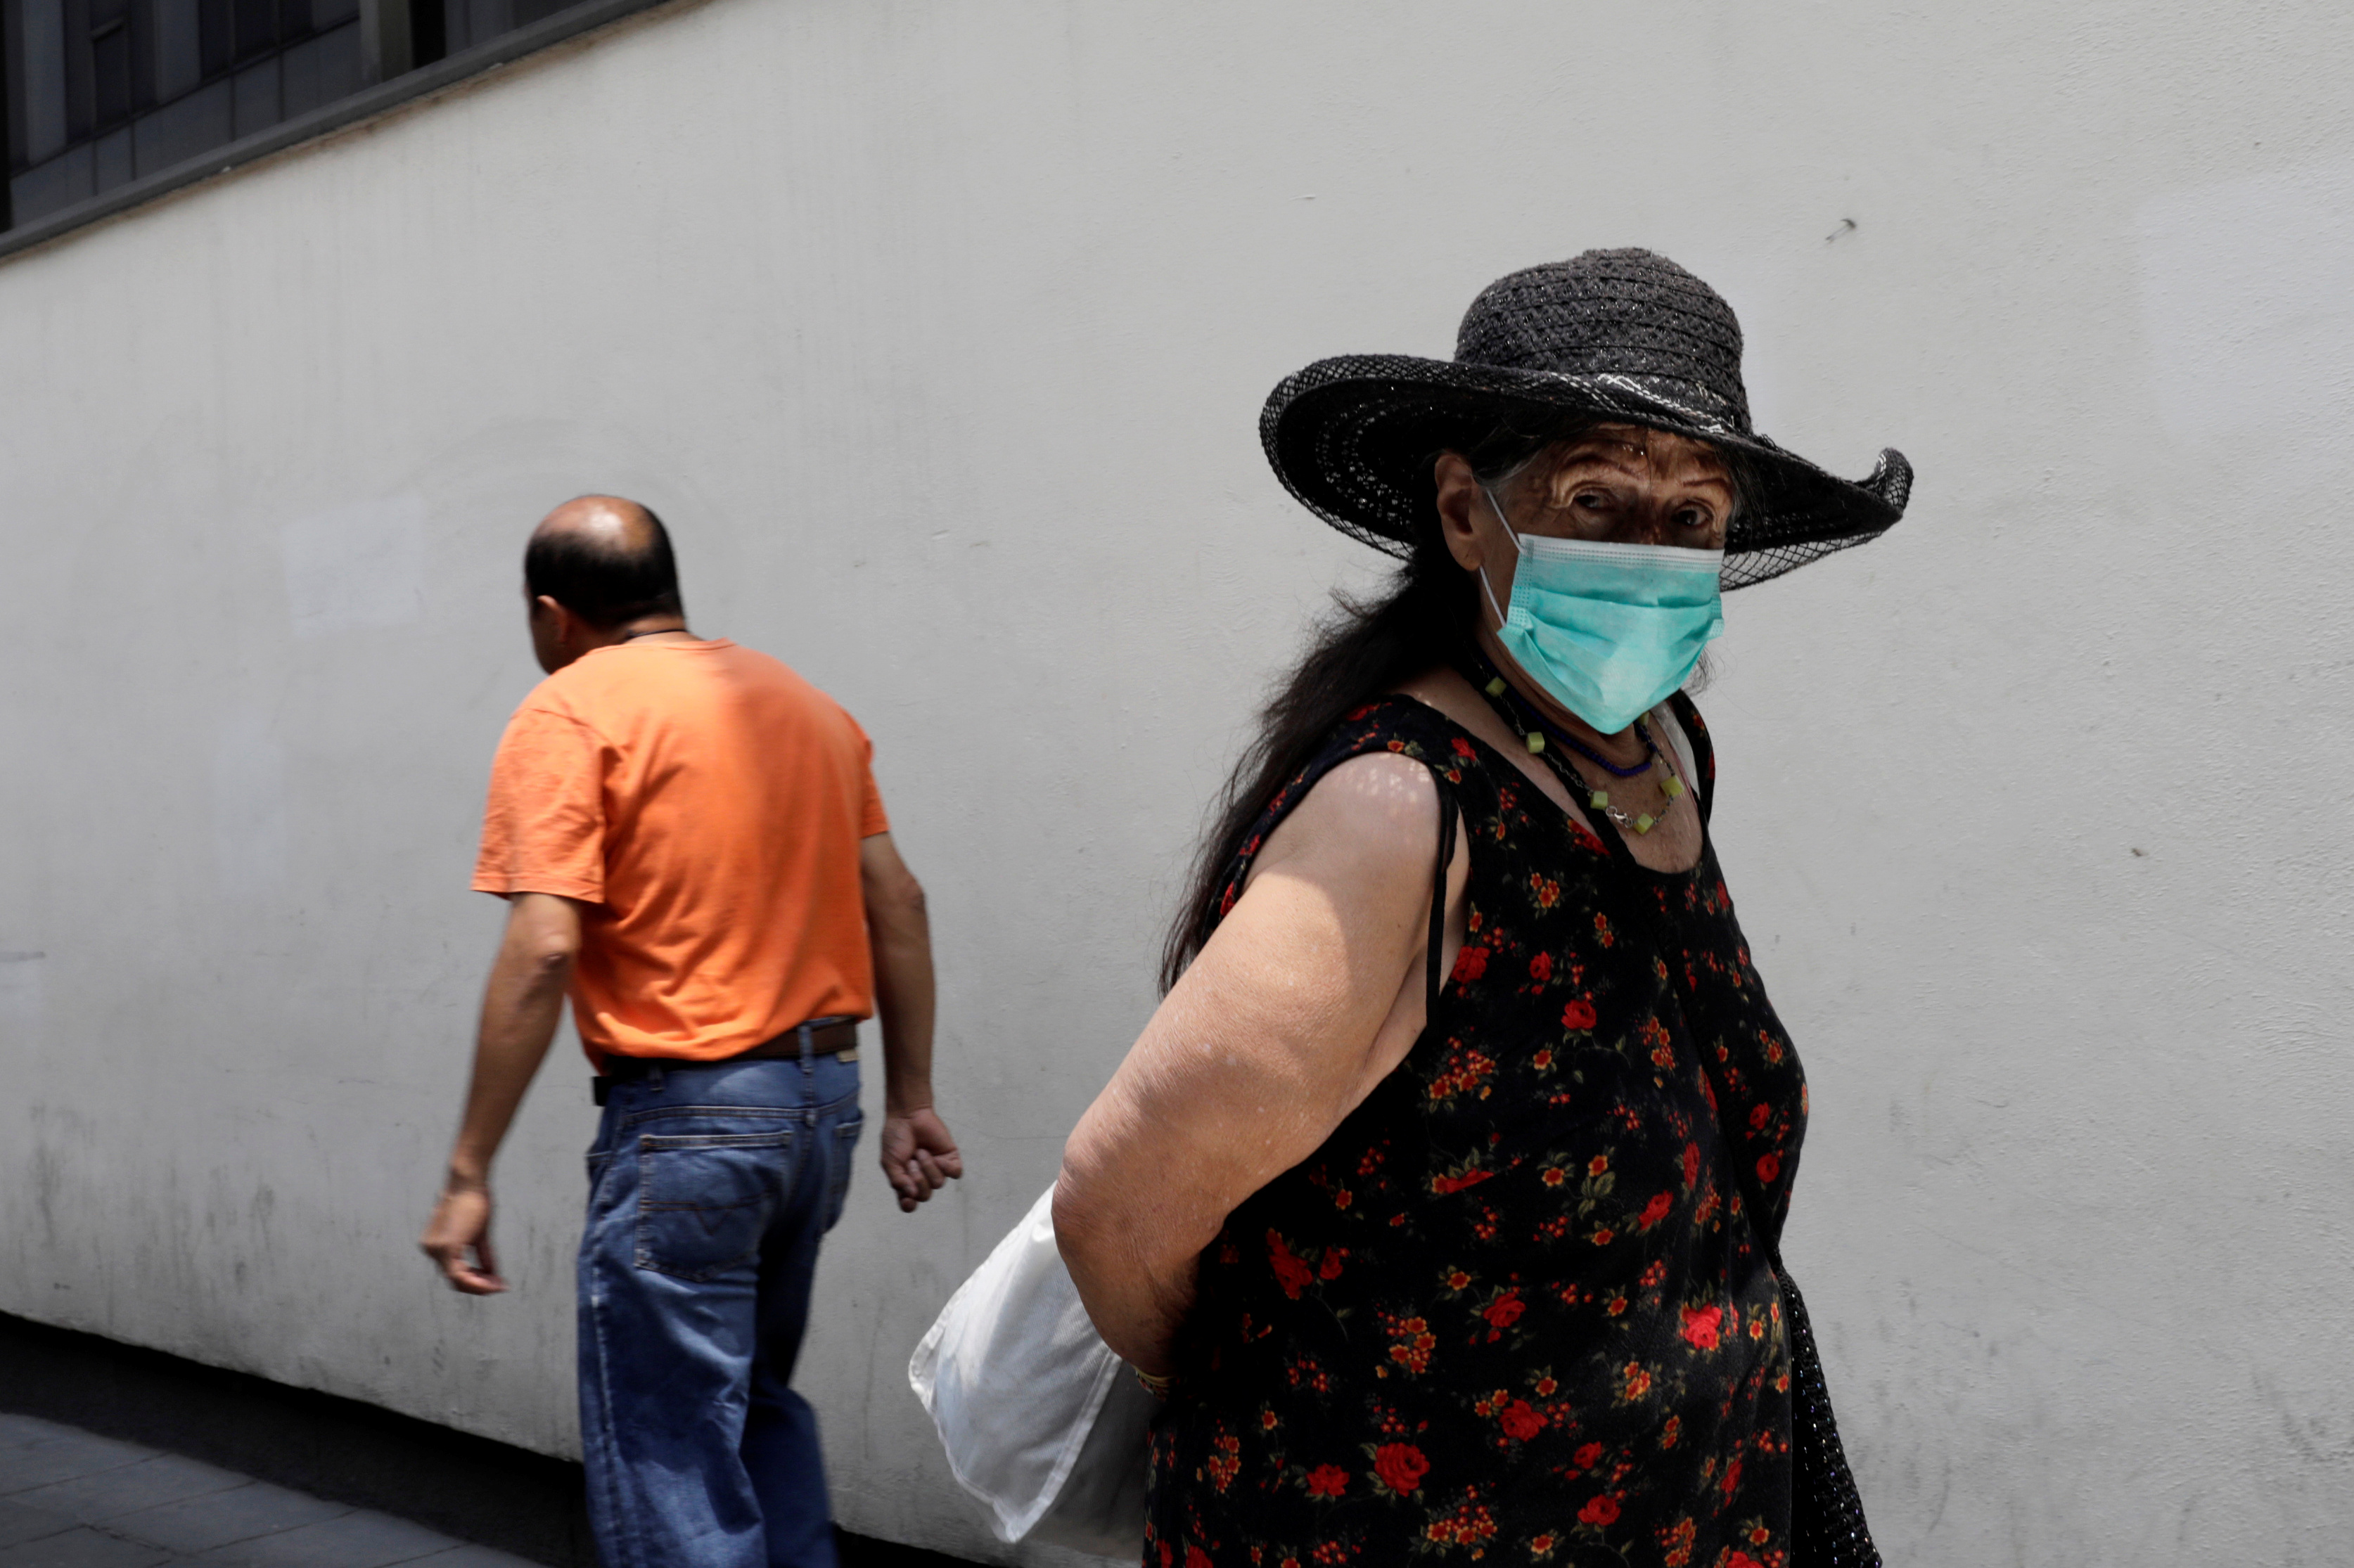 An older woman wears a surgical mask as she looks at the camera